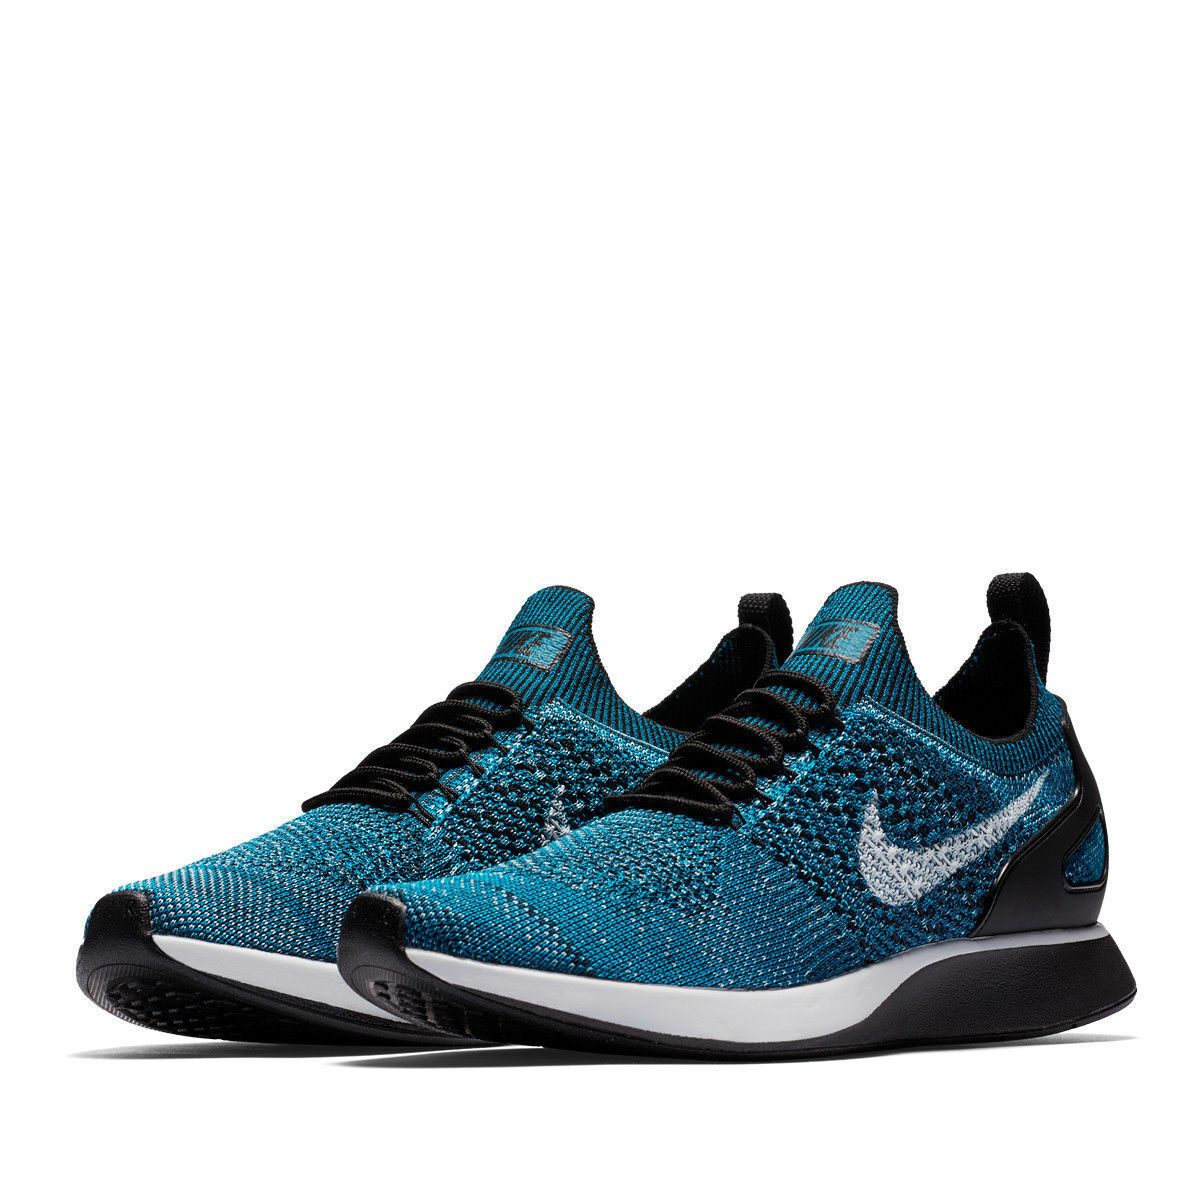 NEW Nike Men's Air Zoom Mariah Flyknit Racer shoes 918264 300 blueee size 12.5 1 2